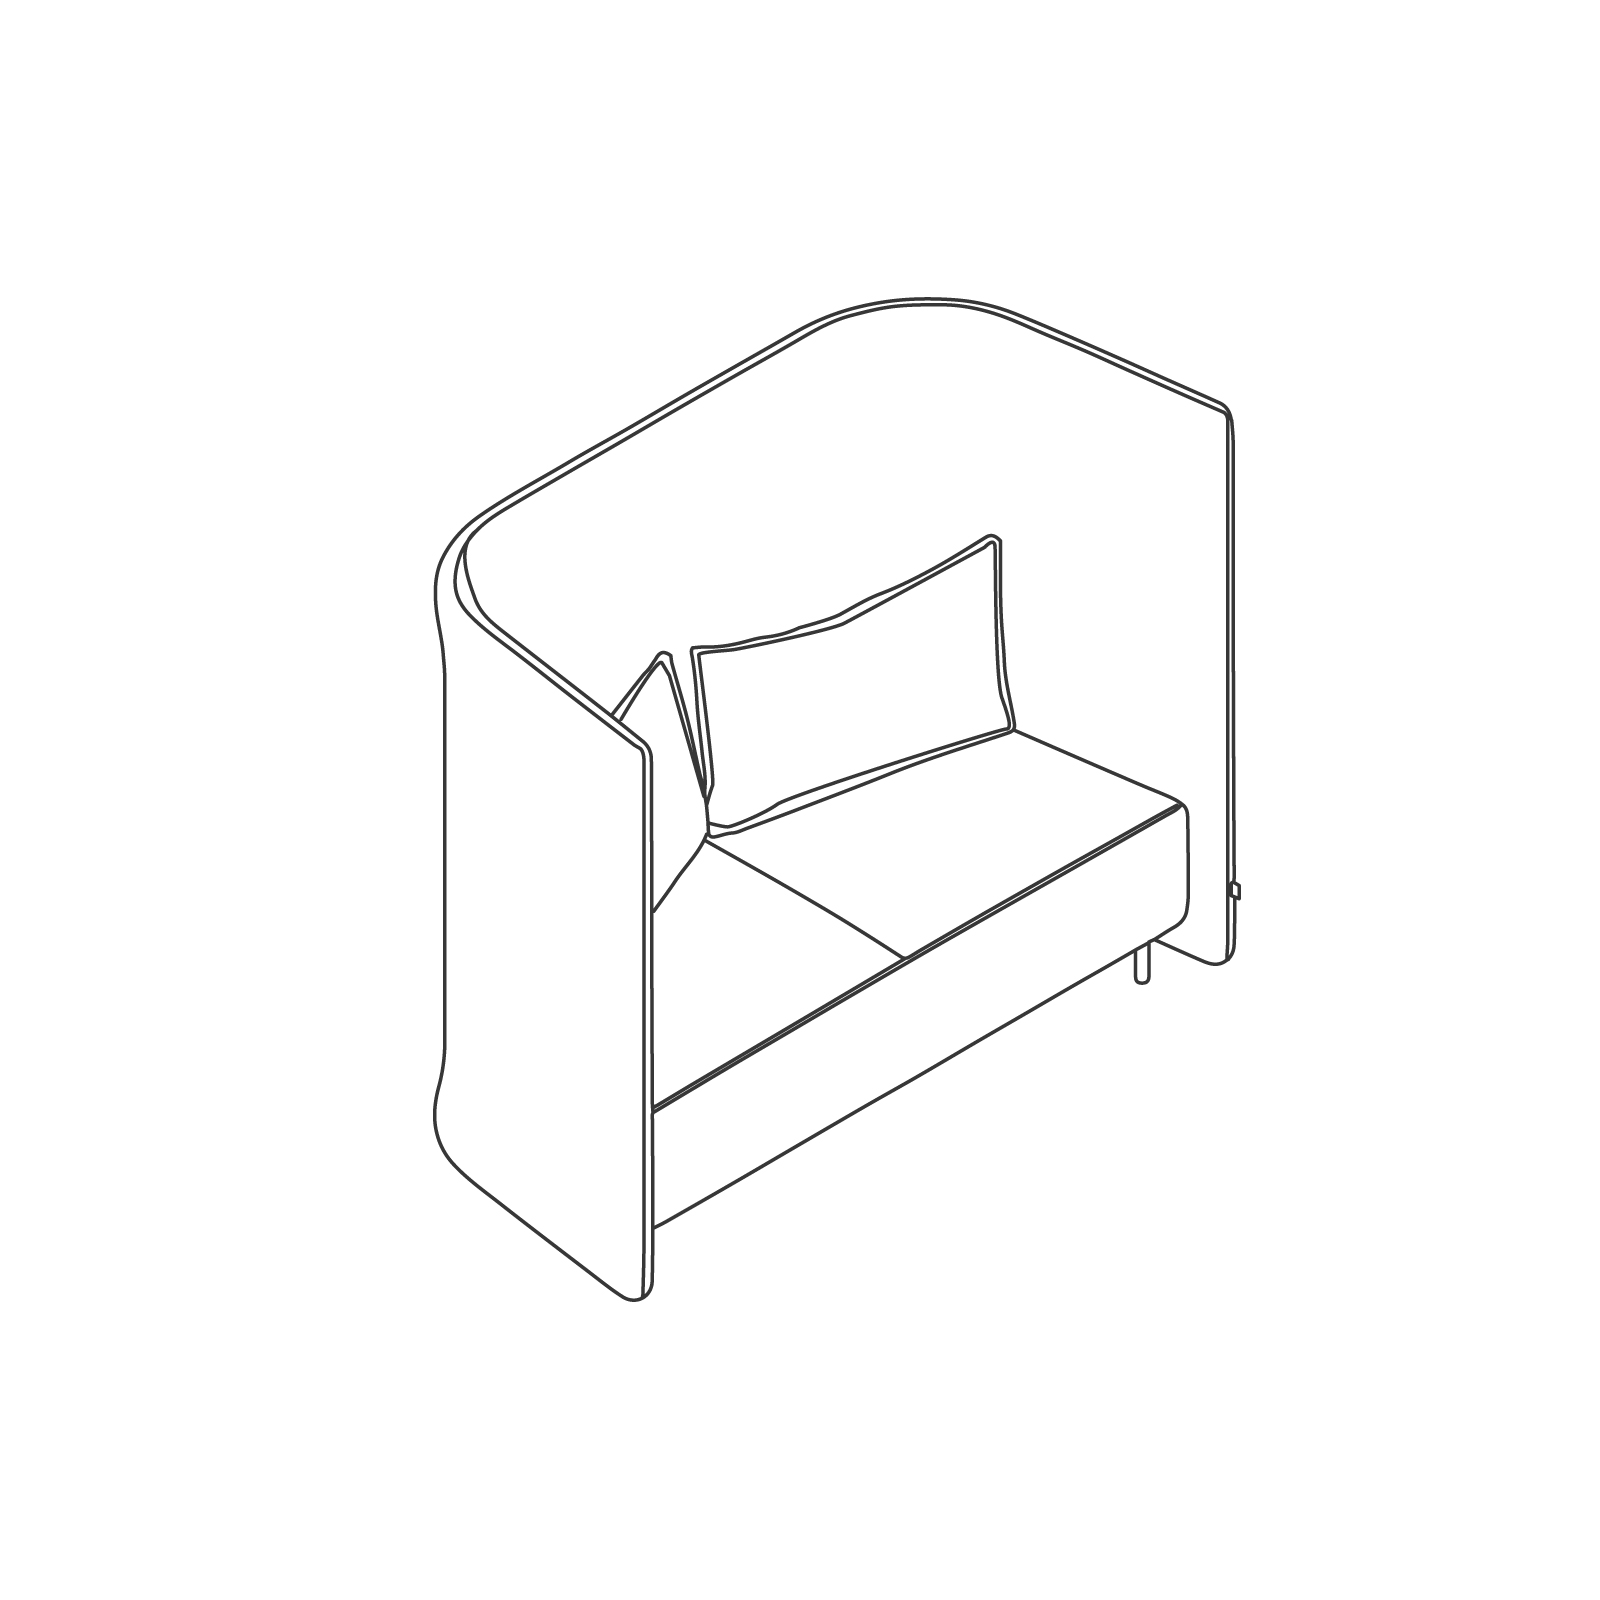 A line drawing of Cloud Plain Sofa–High Back–2 Seat.